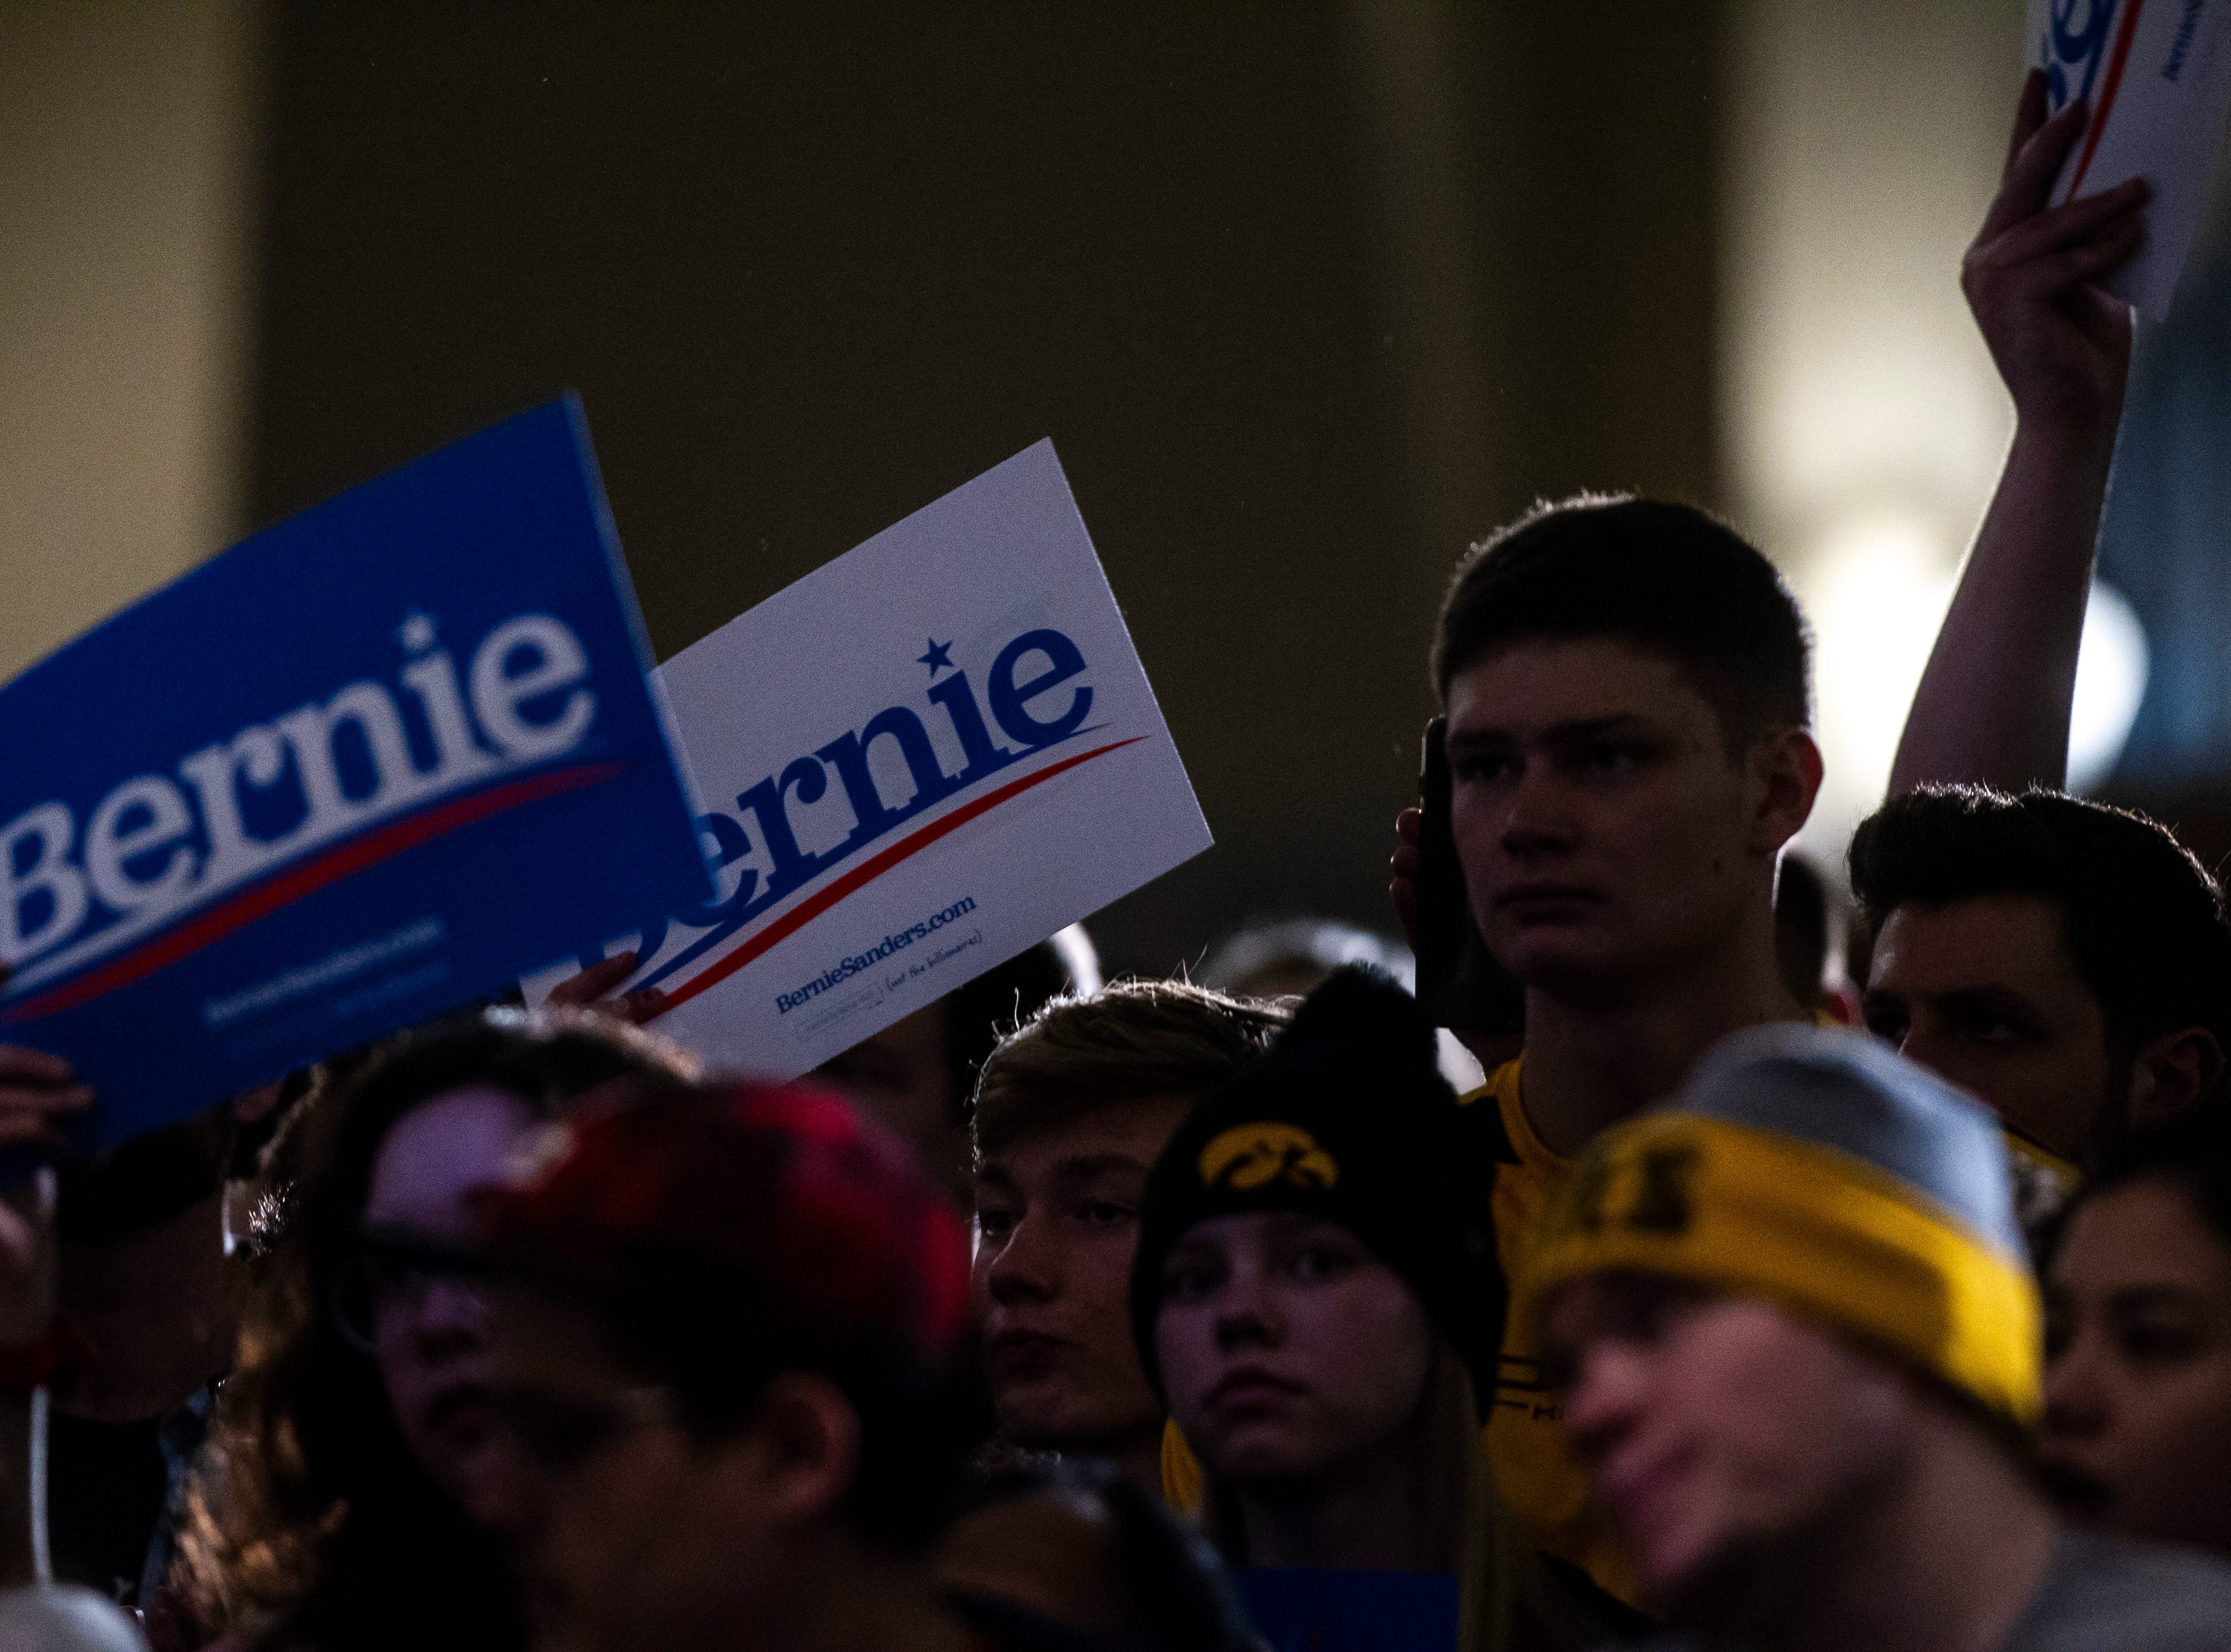 Members of the crowd hold up signs for U.S. Sen. Bernie Sanders, I-VT, at an event during his first trip to the state ahead of the caucus, Friday, March 8, 2019, at the Iowa Memorial Union on the University of Iowa campus in Iowa City, Iowa.